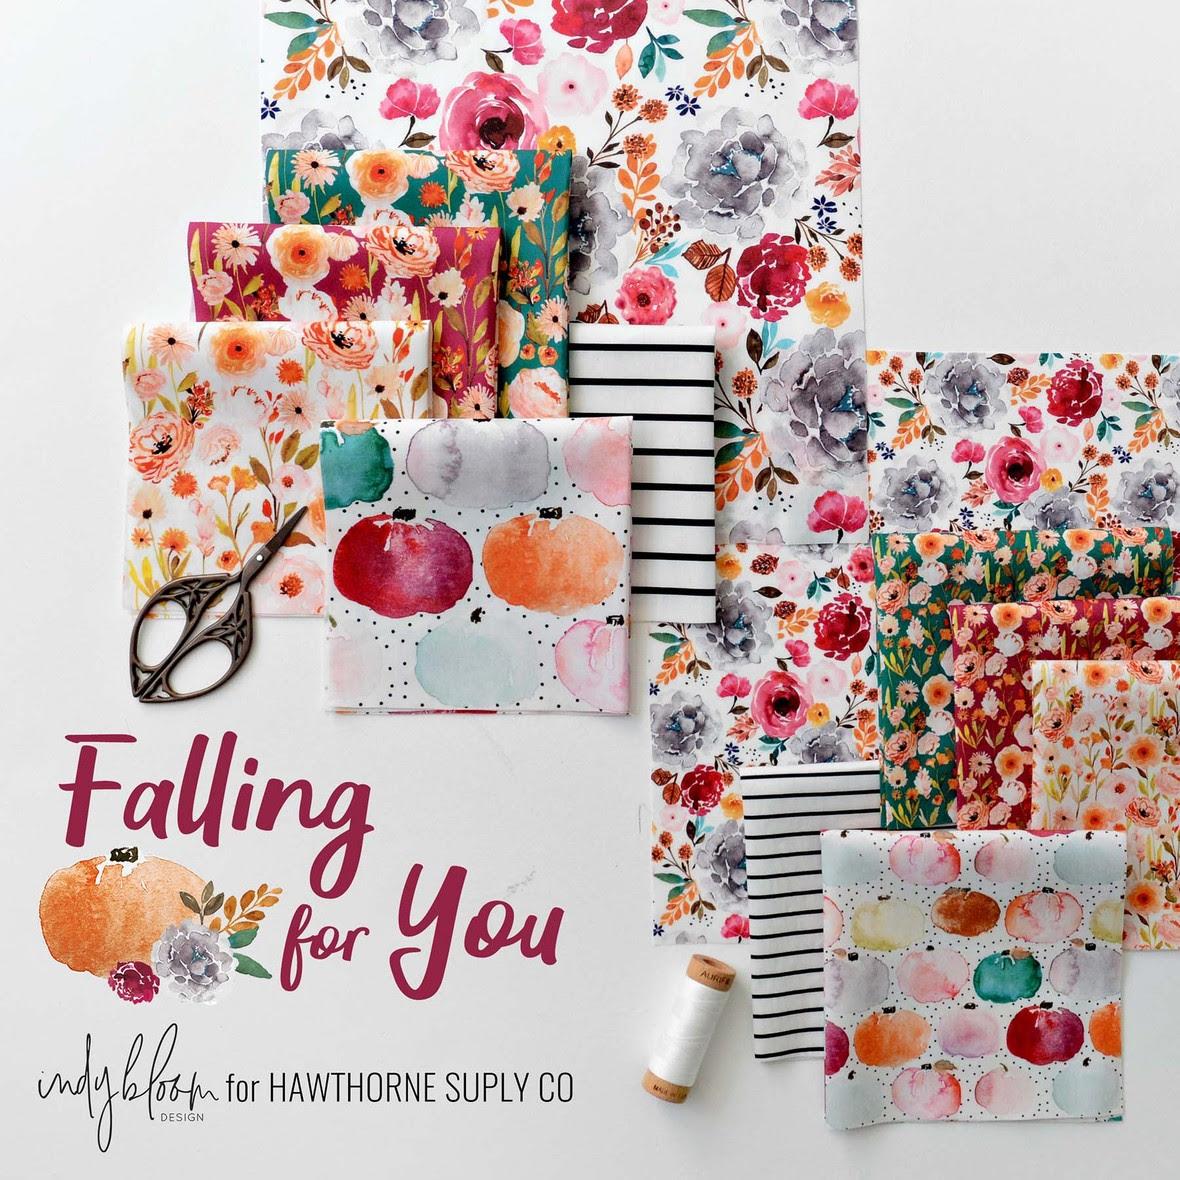 Indy Bloom Falling for You Fabric for Hawthorne Supply Co